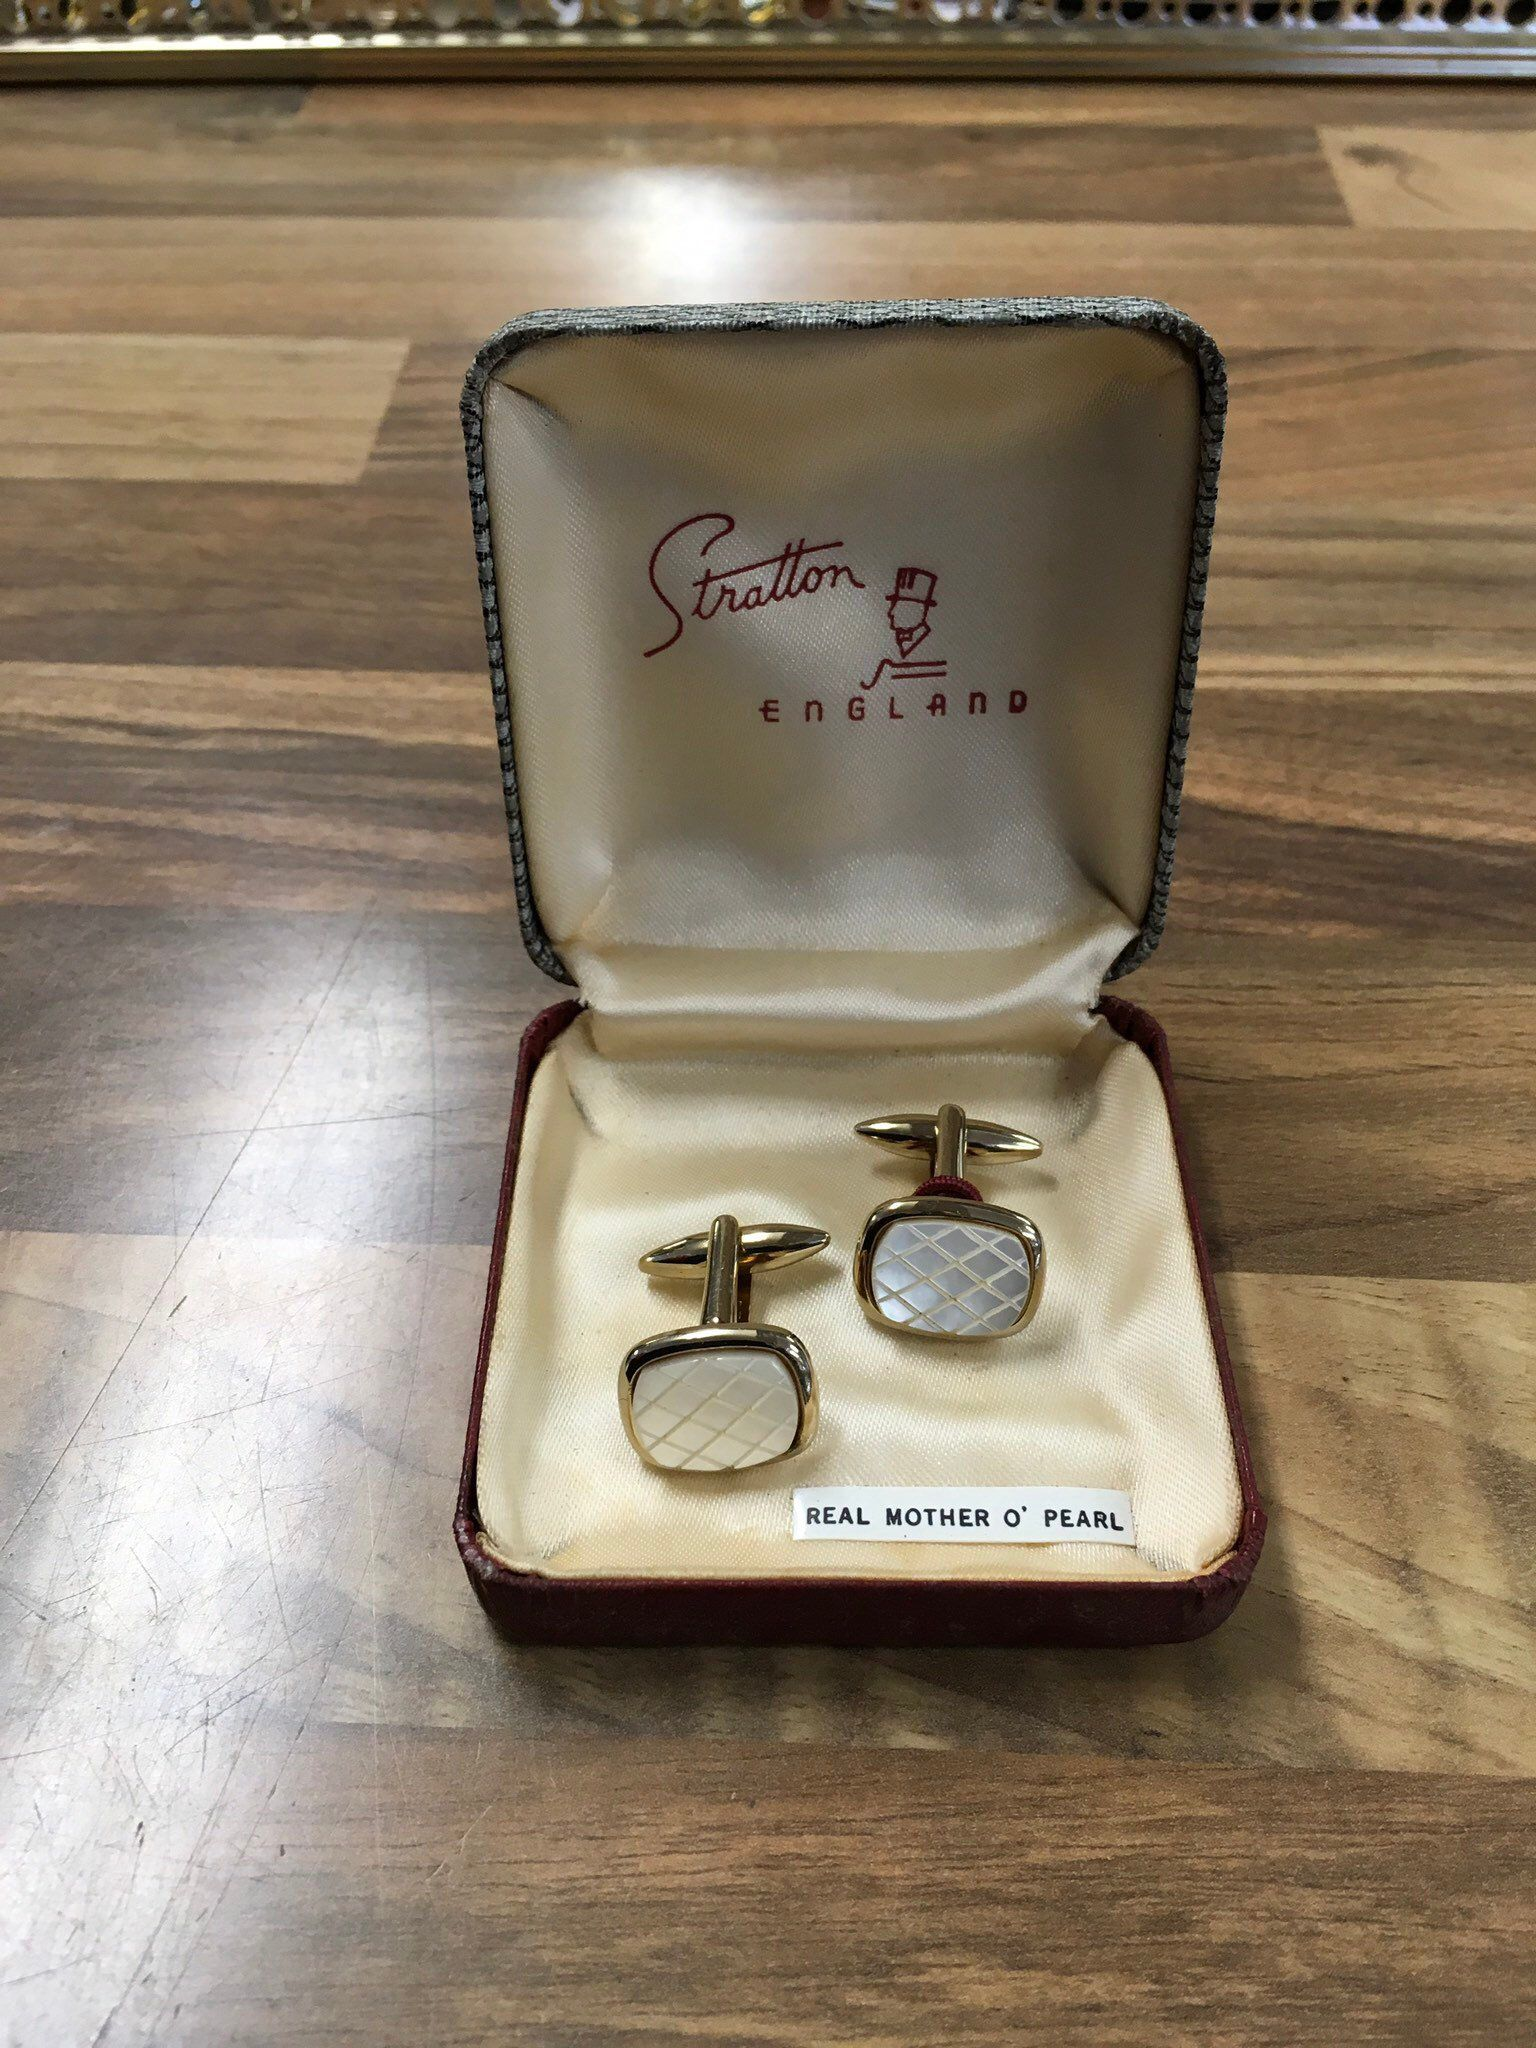 Vintage Stratton Cufflinks Gold Tone and Real Mother of